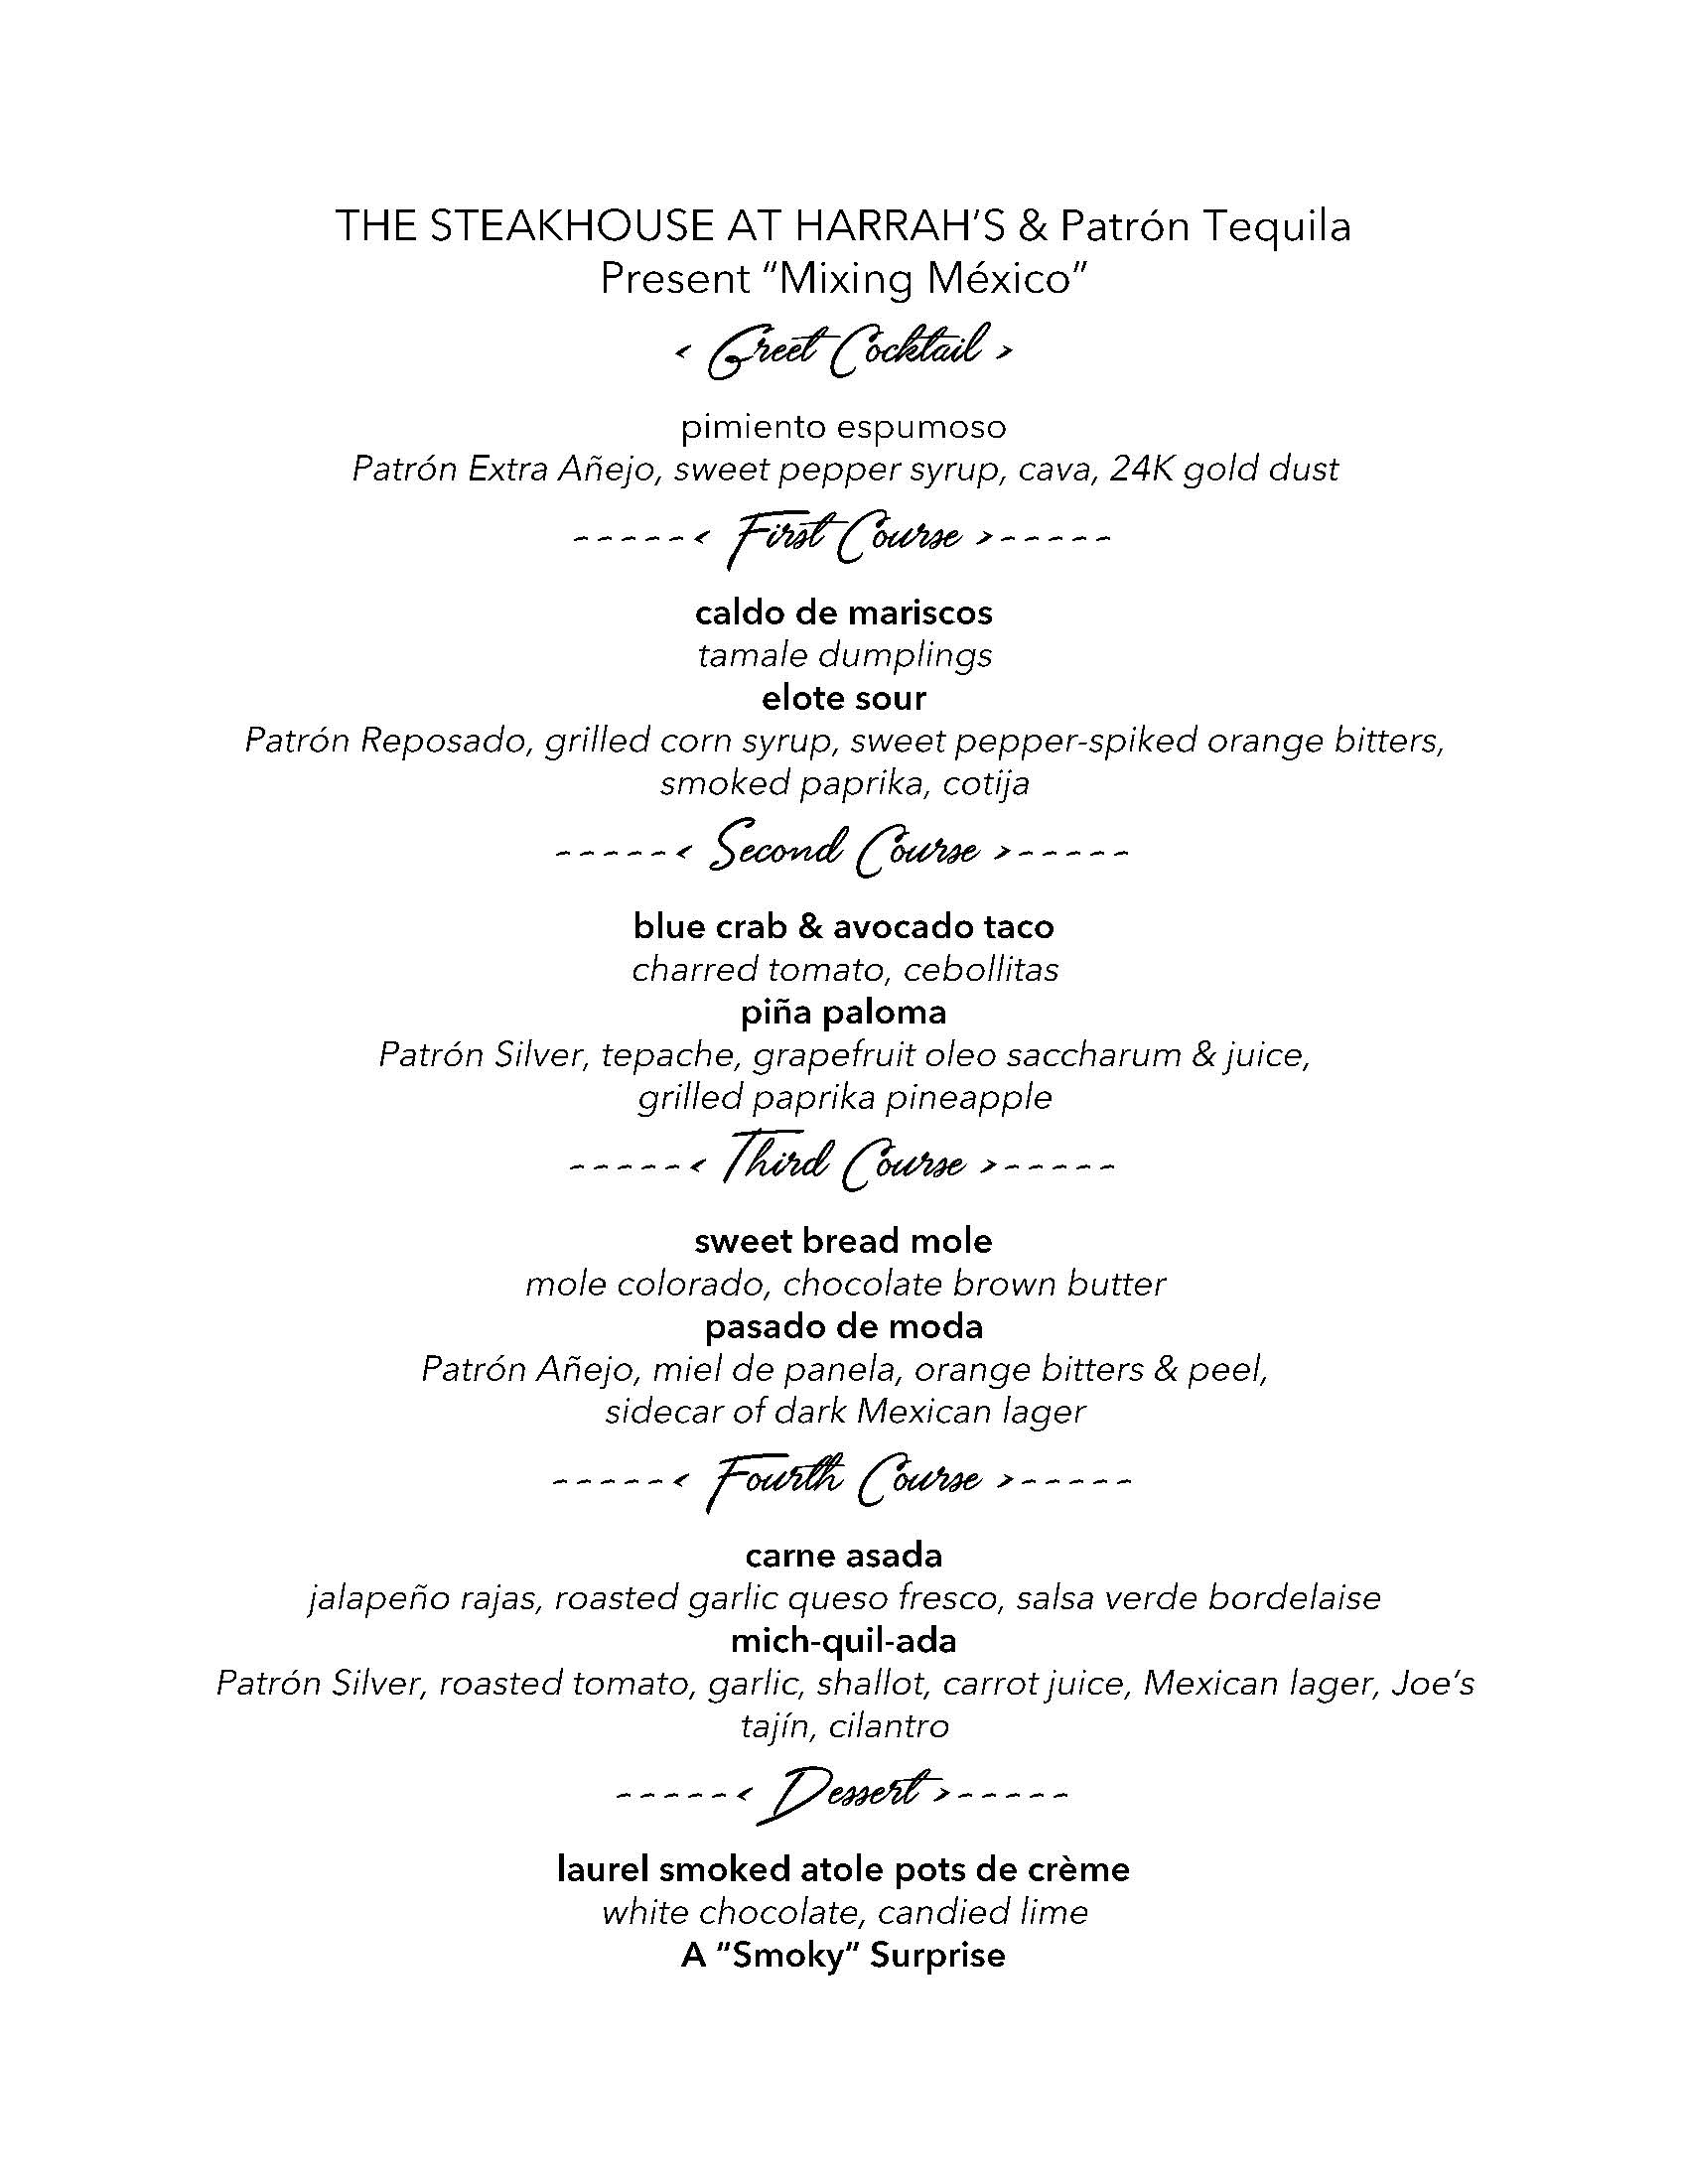 Tales of the Cocktail Menu